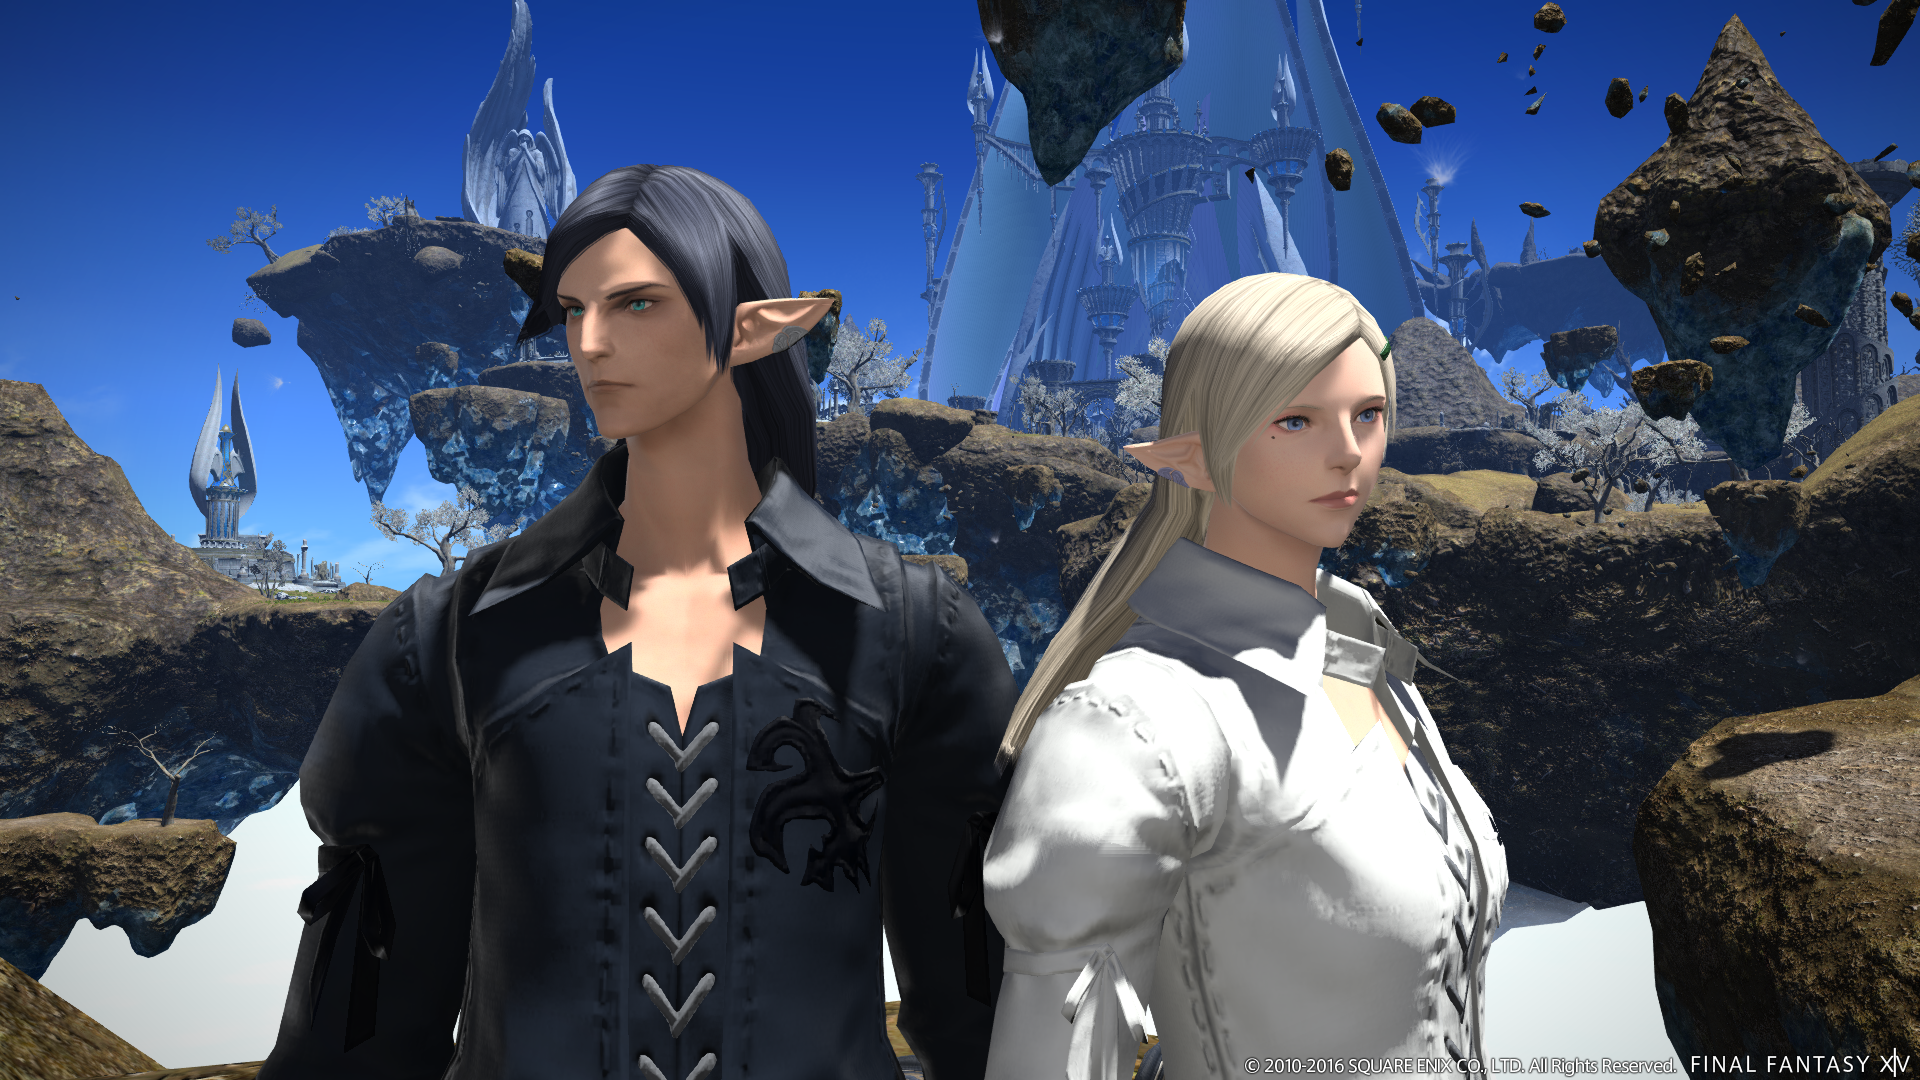 Alexander Mullets And More Previewed For Ffxiv Patch 3 4 Gamer Escape